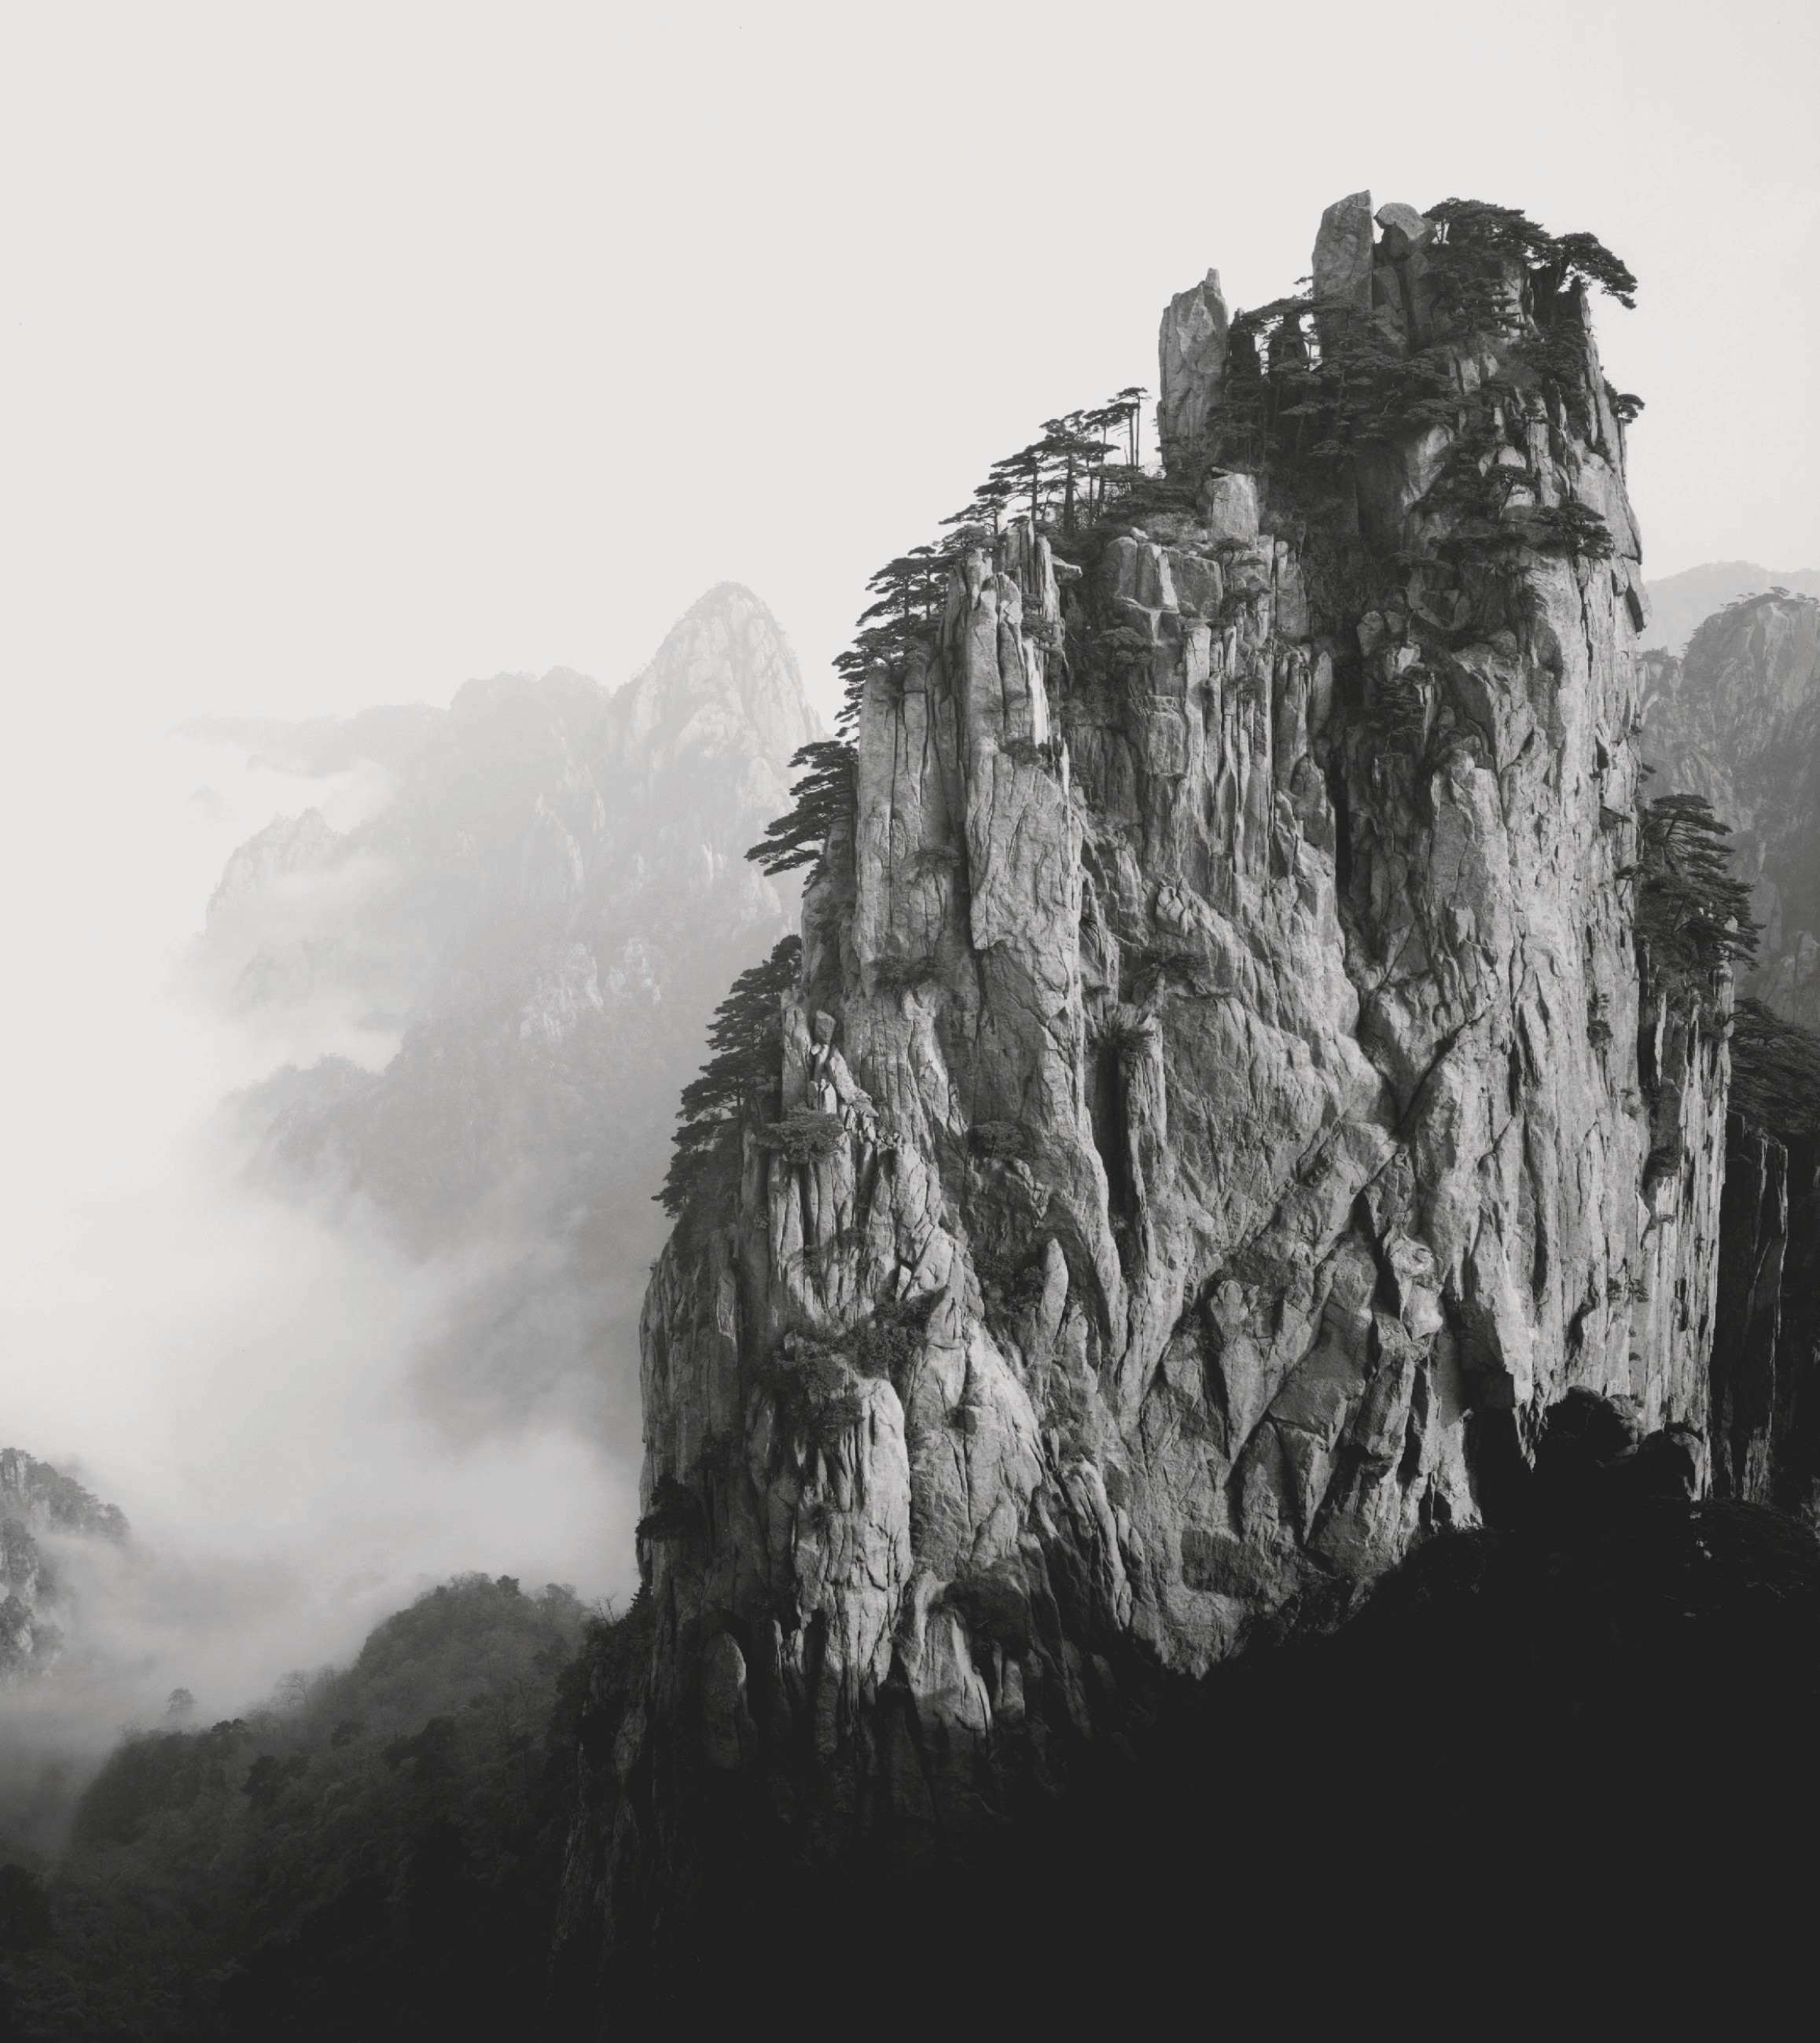 The majesty of Huangshan, Huangshan, China, 2007